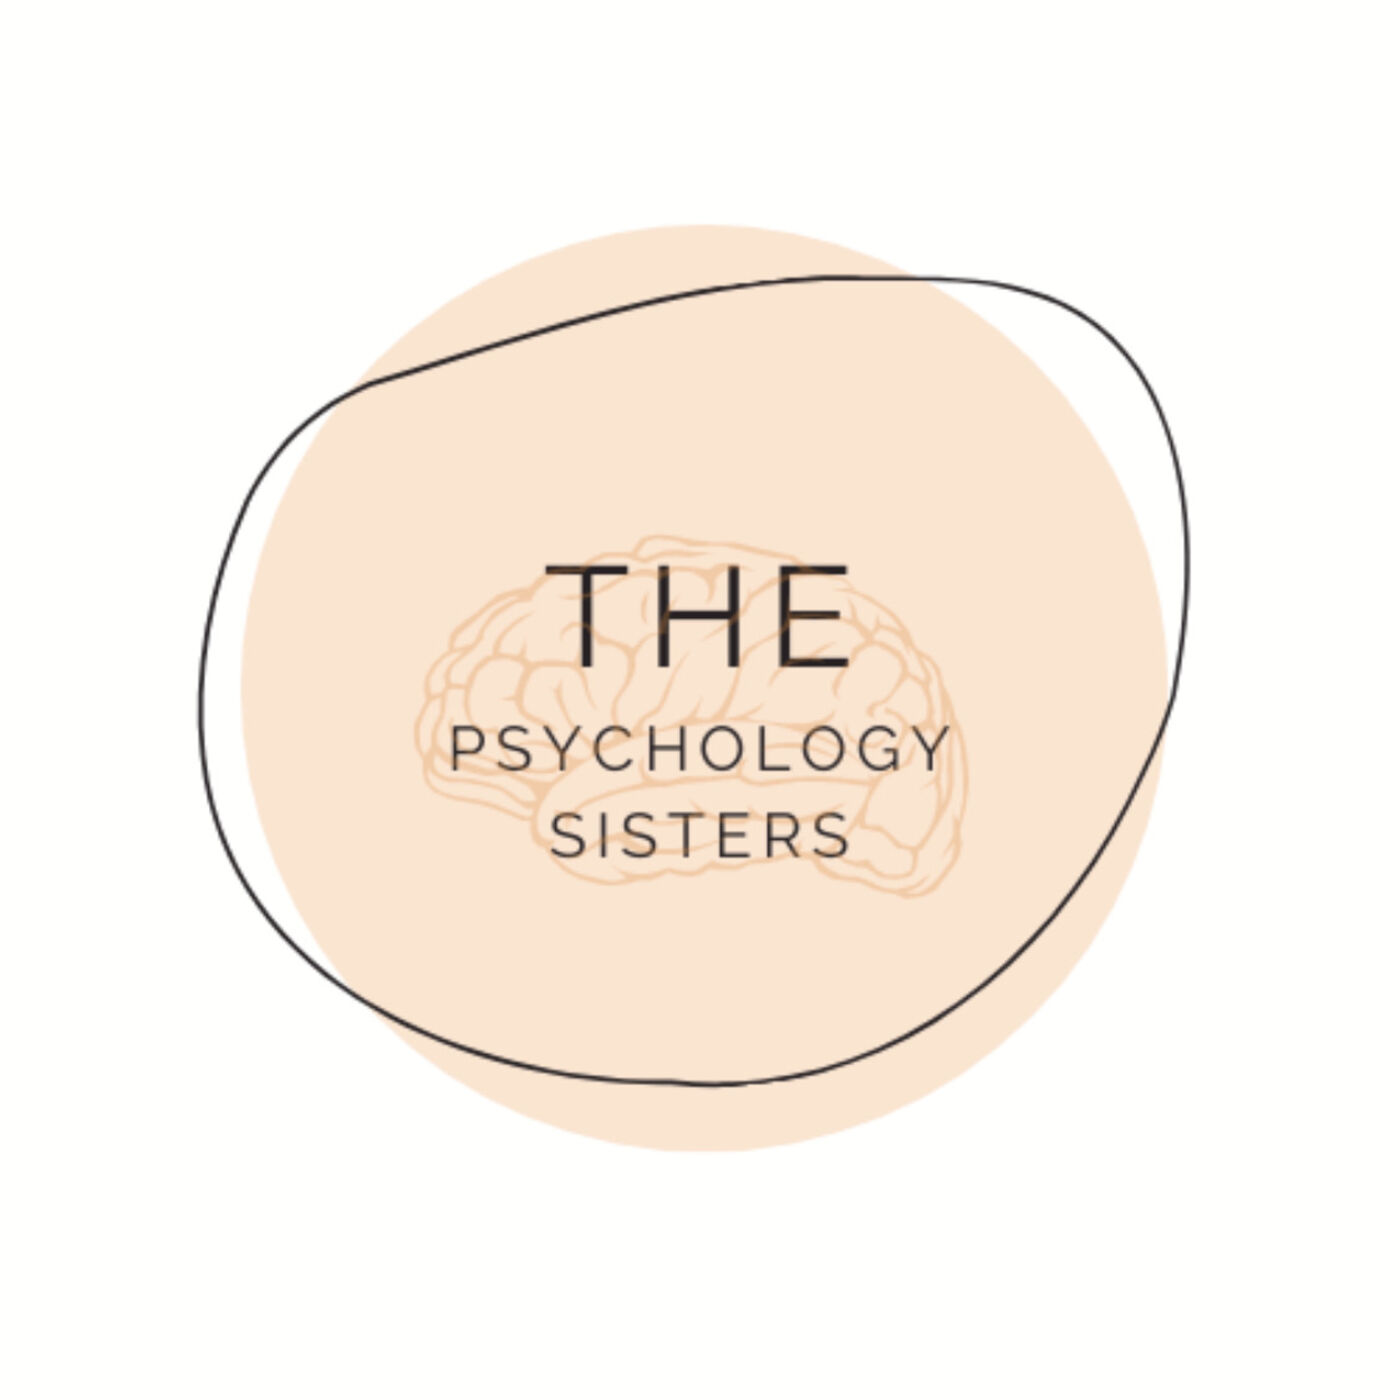 The Psychology Sisters